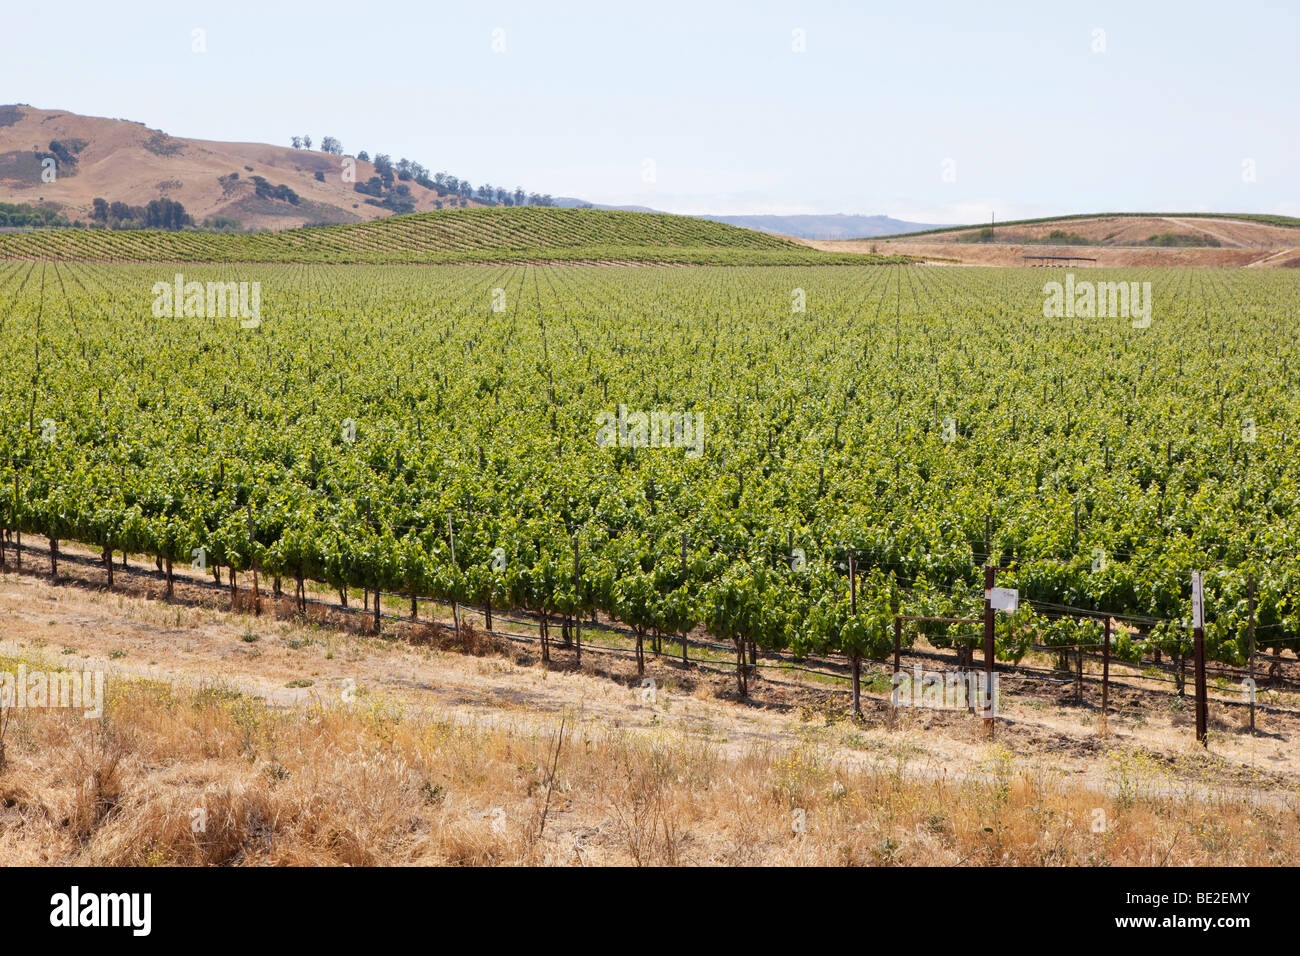 Vineyard in Central California Stock Photo